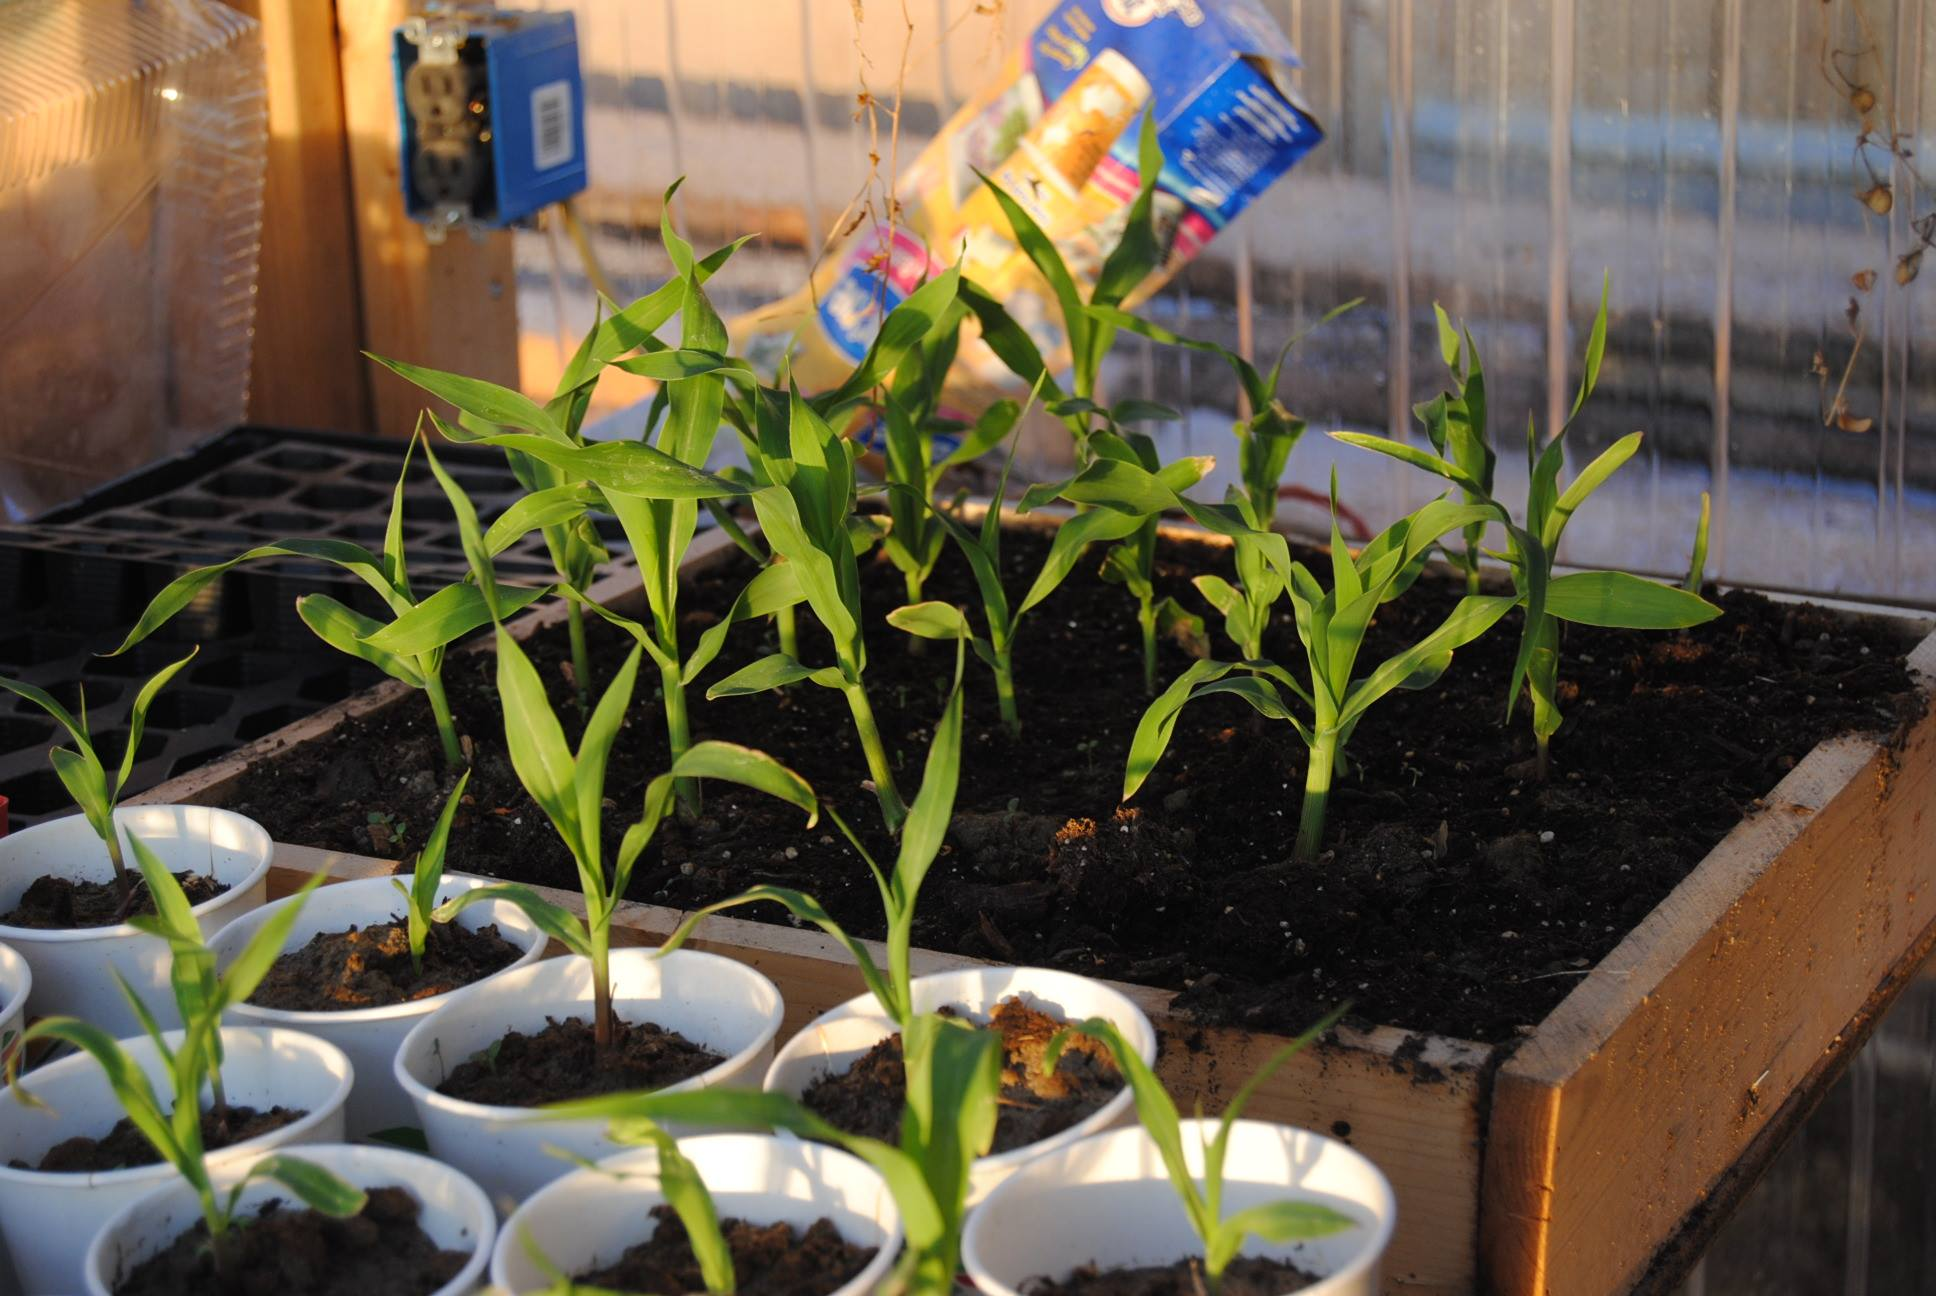 Easy Guide To Growing Your Own Food: Starting Plants Indoors